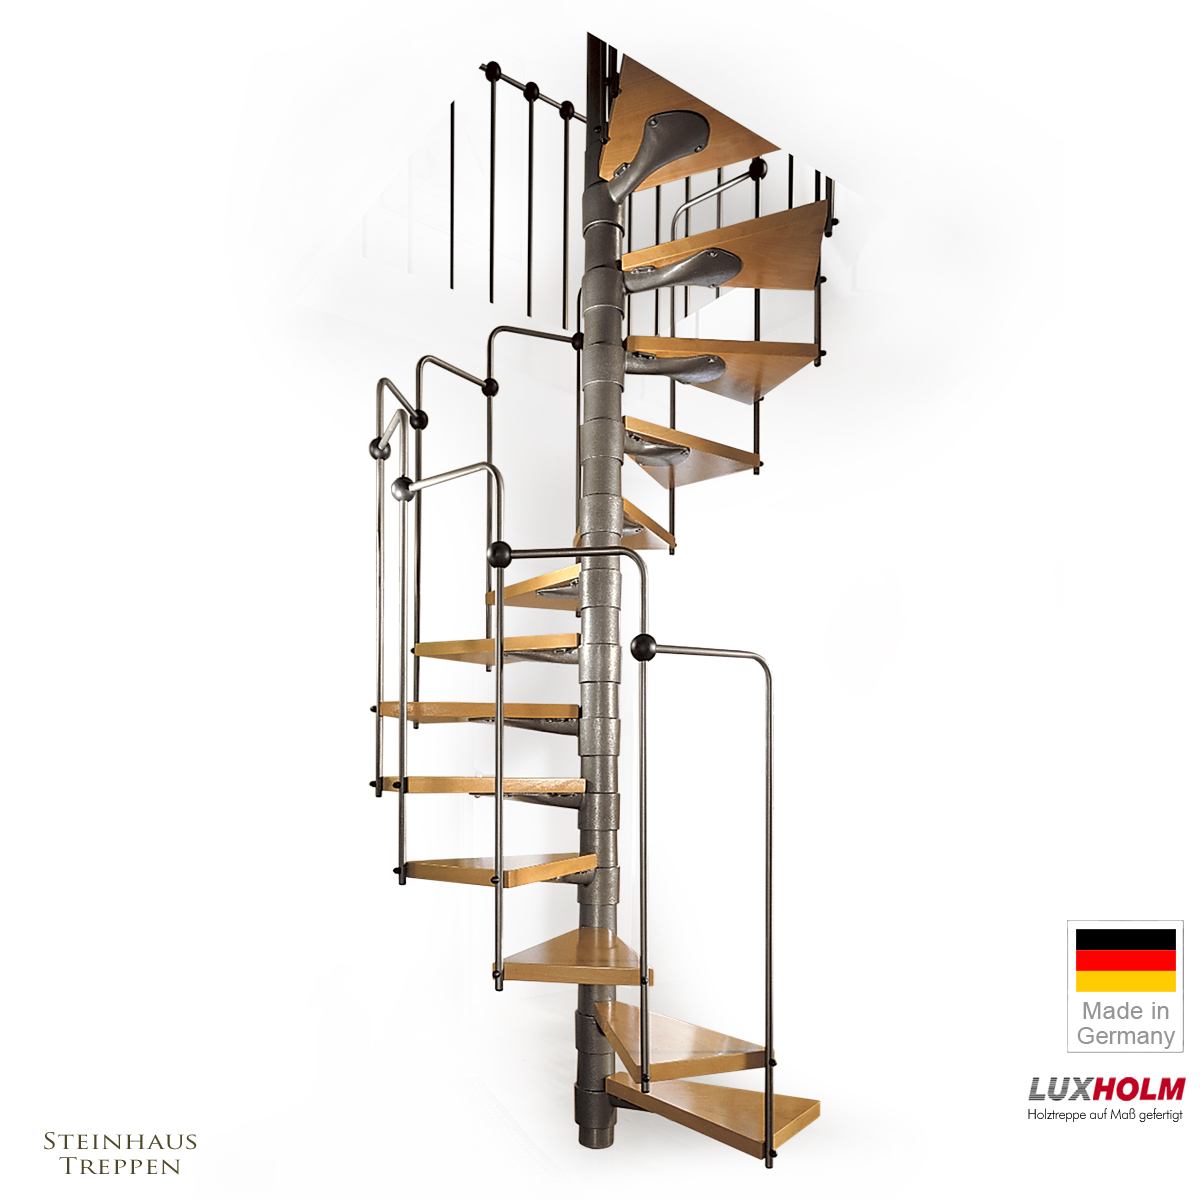 spindeltreppen sind g nstige wendeltreppen f r wohnraum. Black Bedroom Furniture Sets. Home Design Ideas